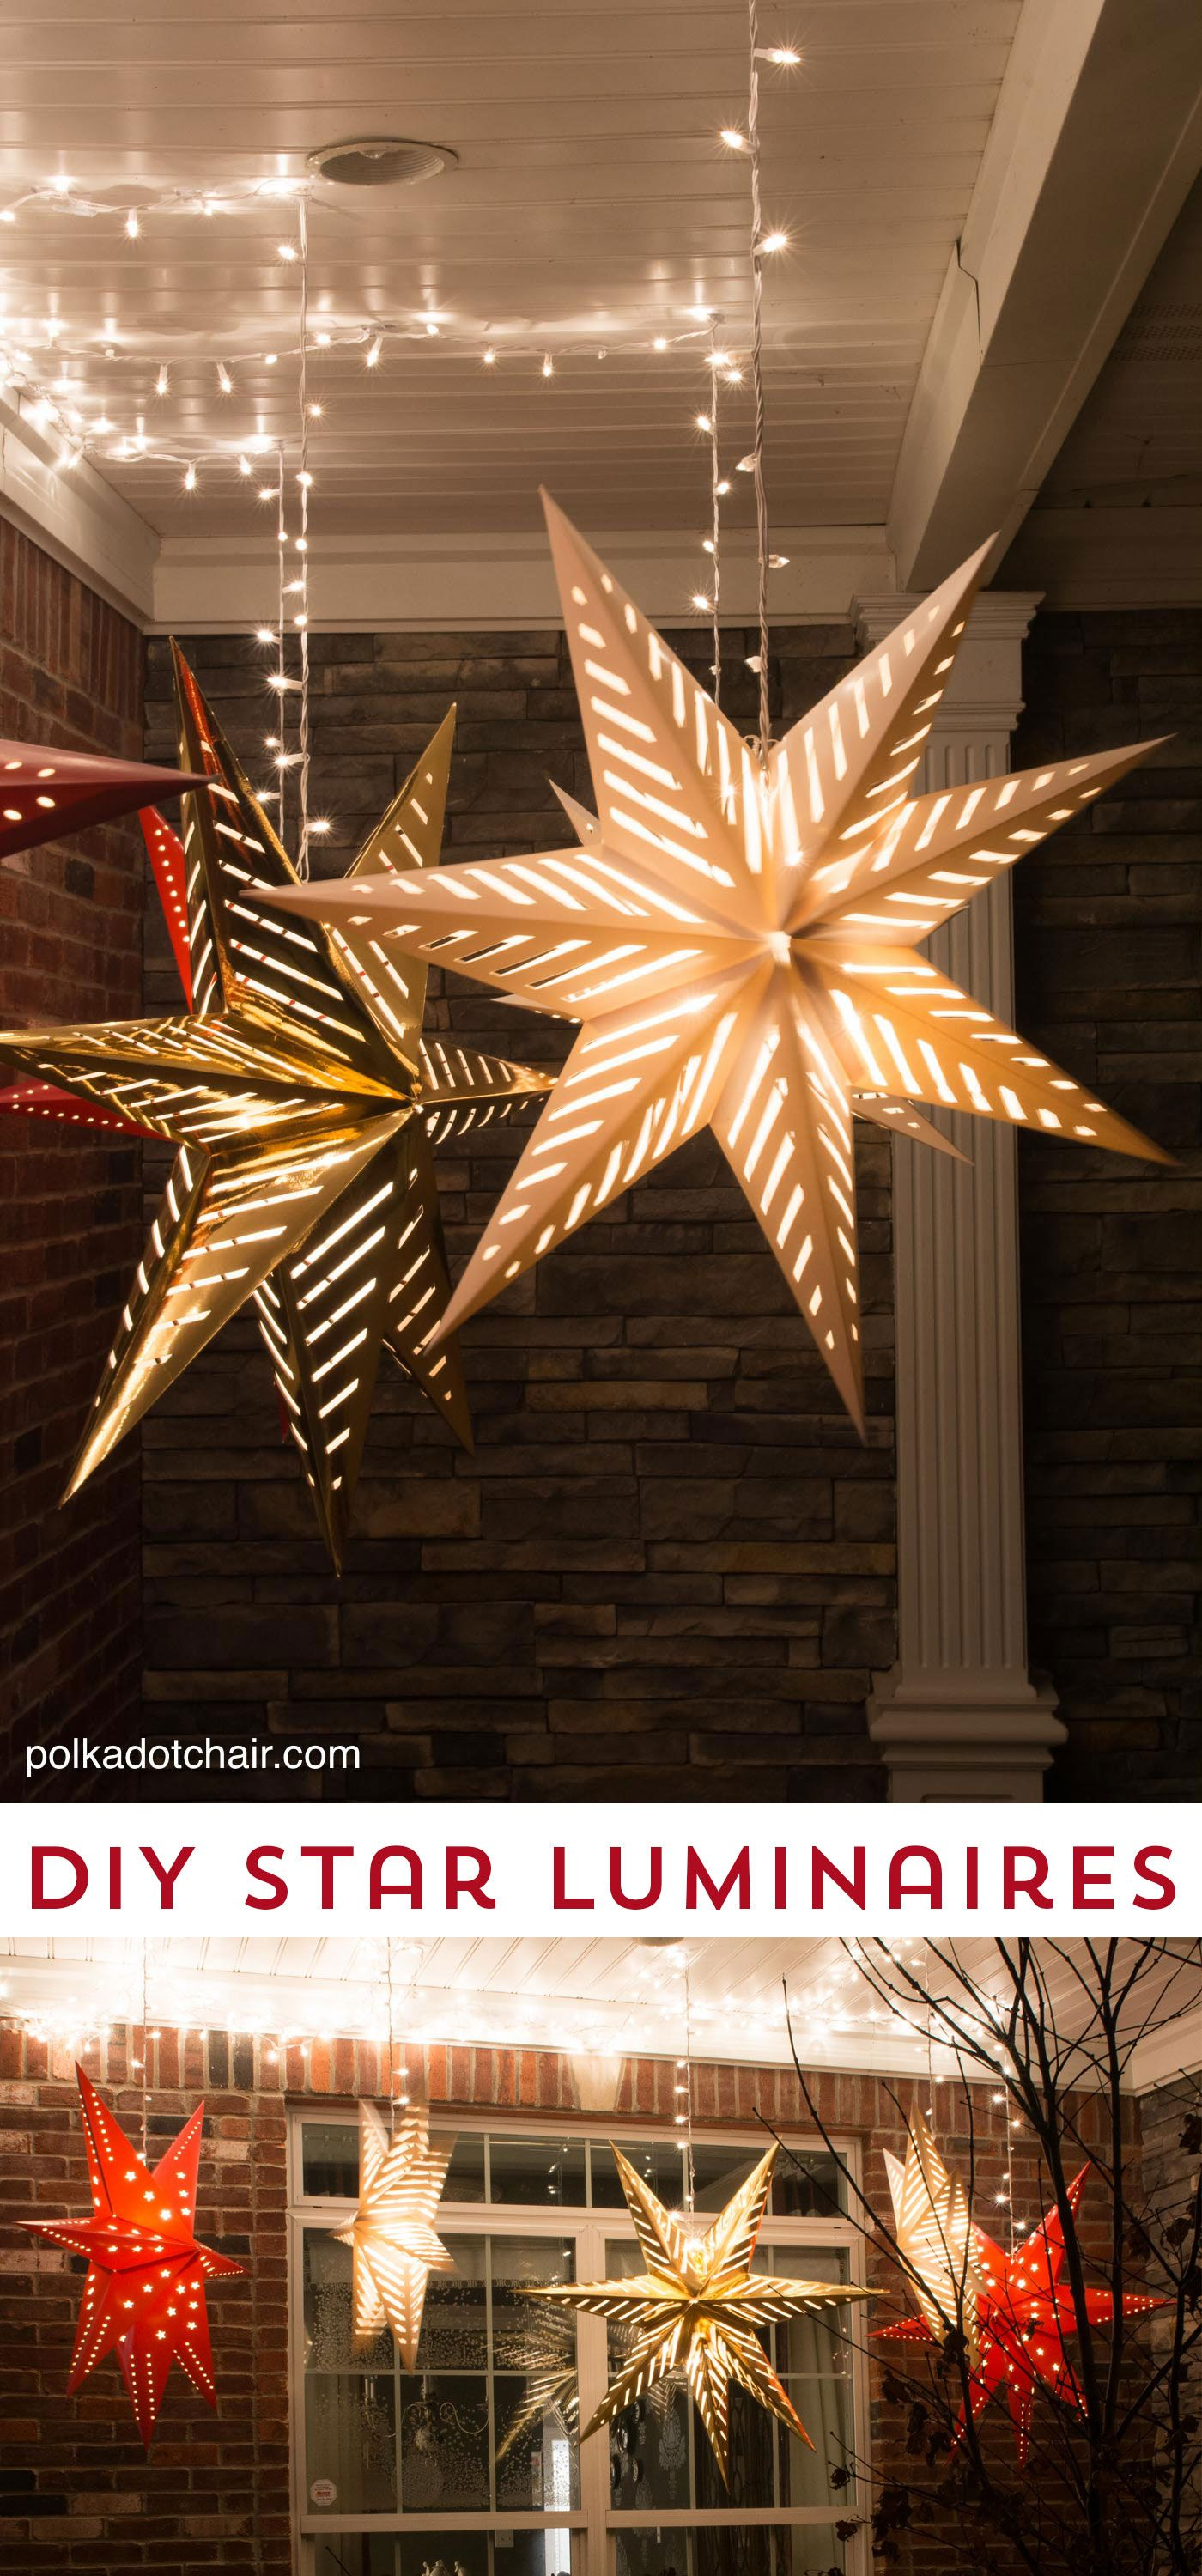 Christmas Porch Decorating Ideas Hanging Star Luminaries Christmas Lights Inside Decorating With Christmas Lights Indoor Christmas Lights